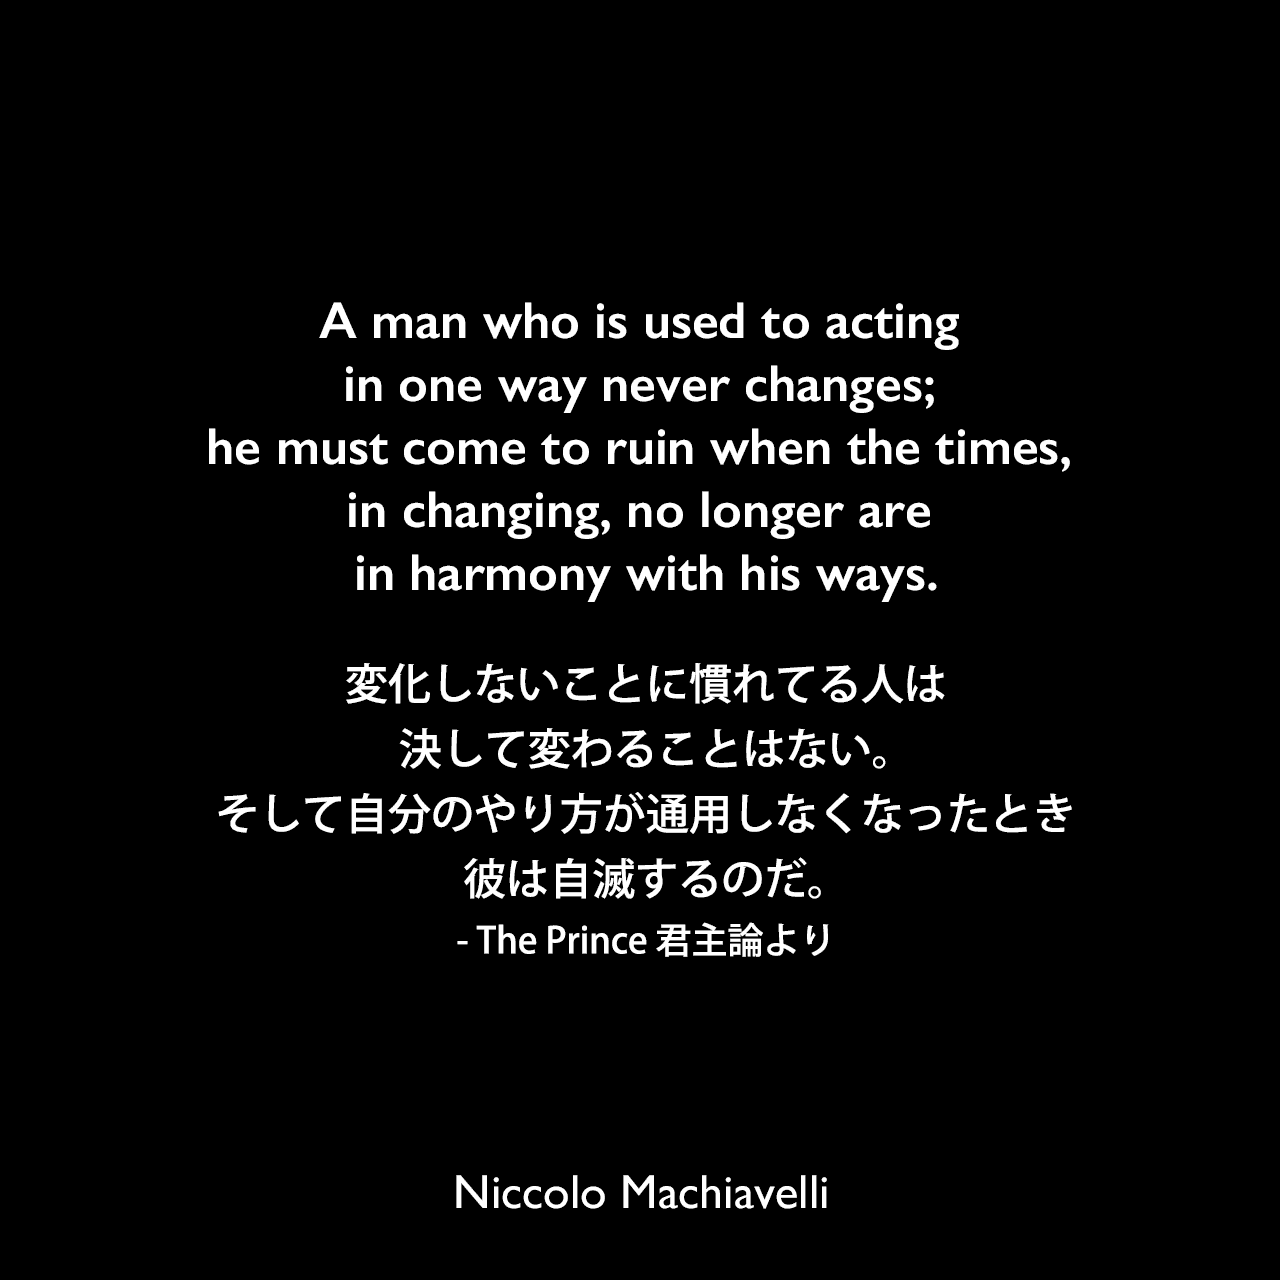 A man who is used to acting in one way never changes; he must come to ruin when the times, in changing, no longer are in harmony with his ways.変化しないことに慣れてる人は決して変わることはない。そして自分のやり方が通用しなくなったとき、彼は自滅するのだ。- The Prince 君主論よりNiccolo Machiavelli